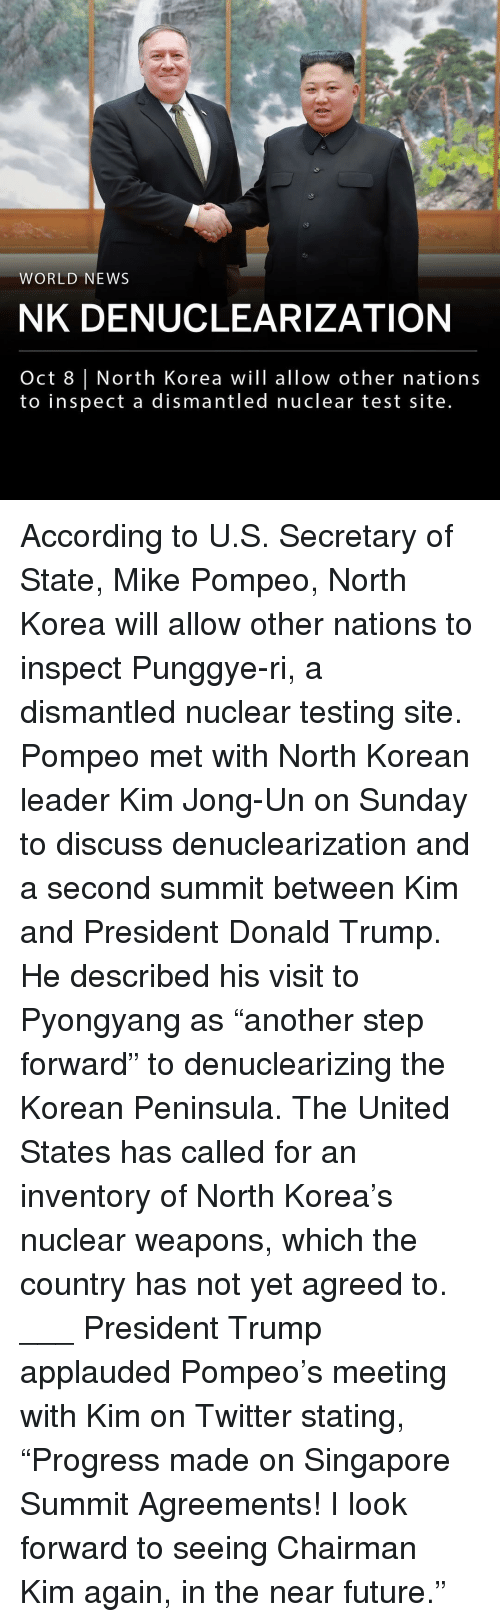 """Donald Trump, Future, and Kim Jong-Un: WORLD NEWS  NK DENUCLEARIZATION  Oct 8 